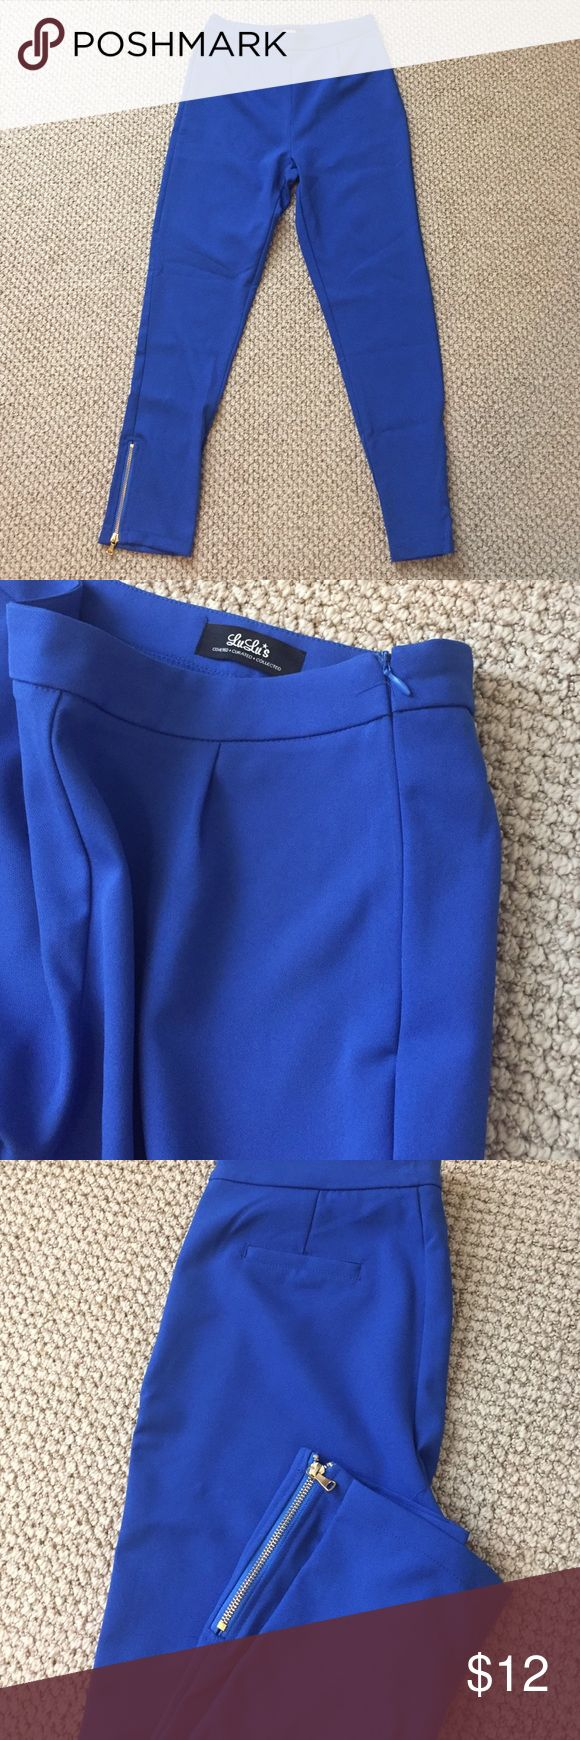 Lulu's women's slacks Dressier colbalt blue pants. 80% polyester. 18% rayon. 2% spandex. Great pant. Never worn. Too big for me. I'm a 0-2 with no rear end for reference Lulu's Pants Ankle & Cropped